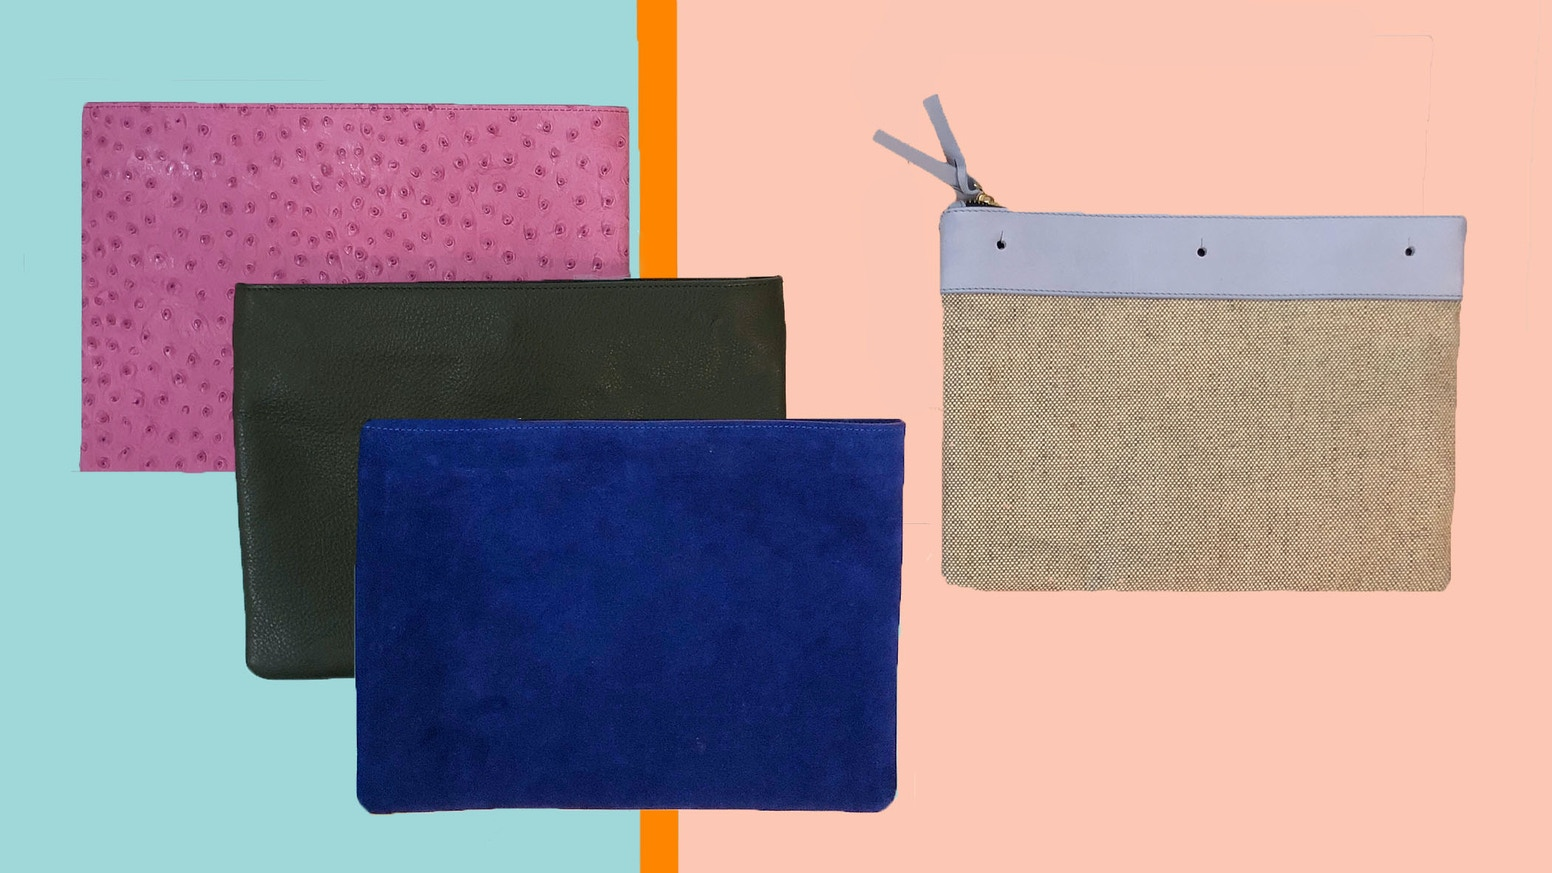 Interchangeable Luxury Handbags For Your Ever Evolving Style